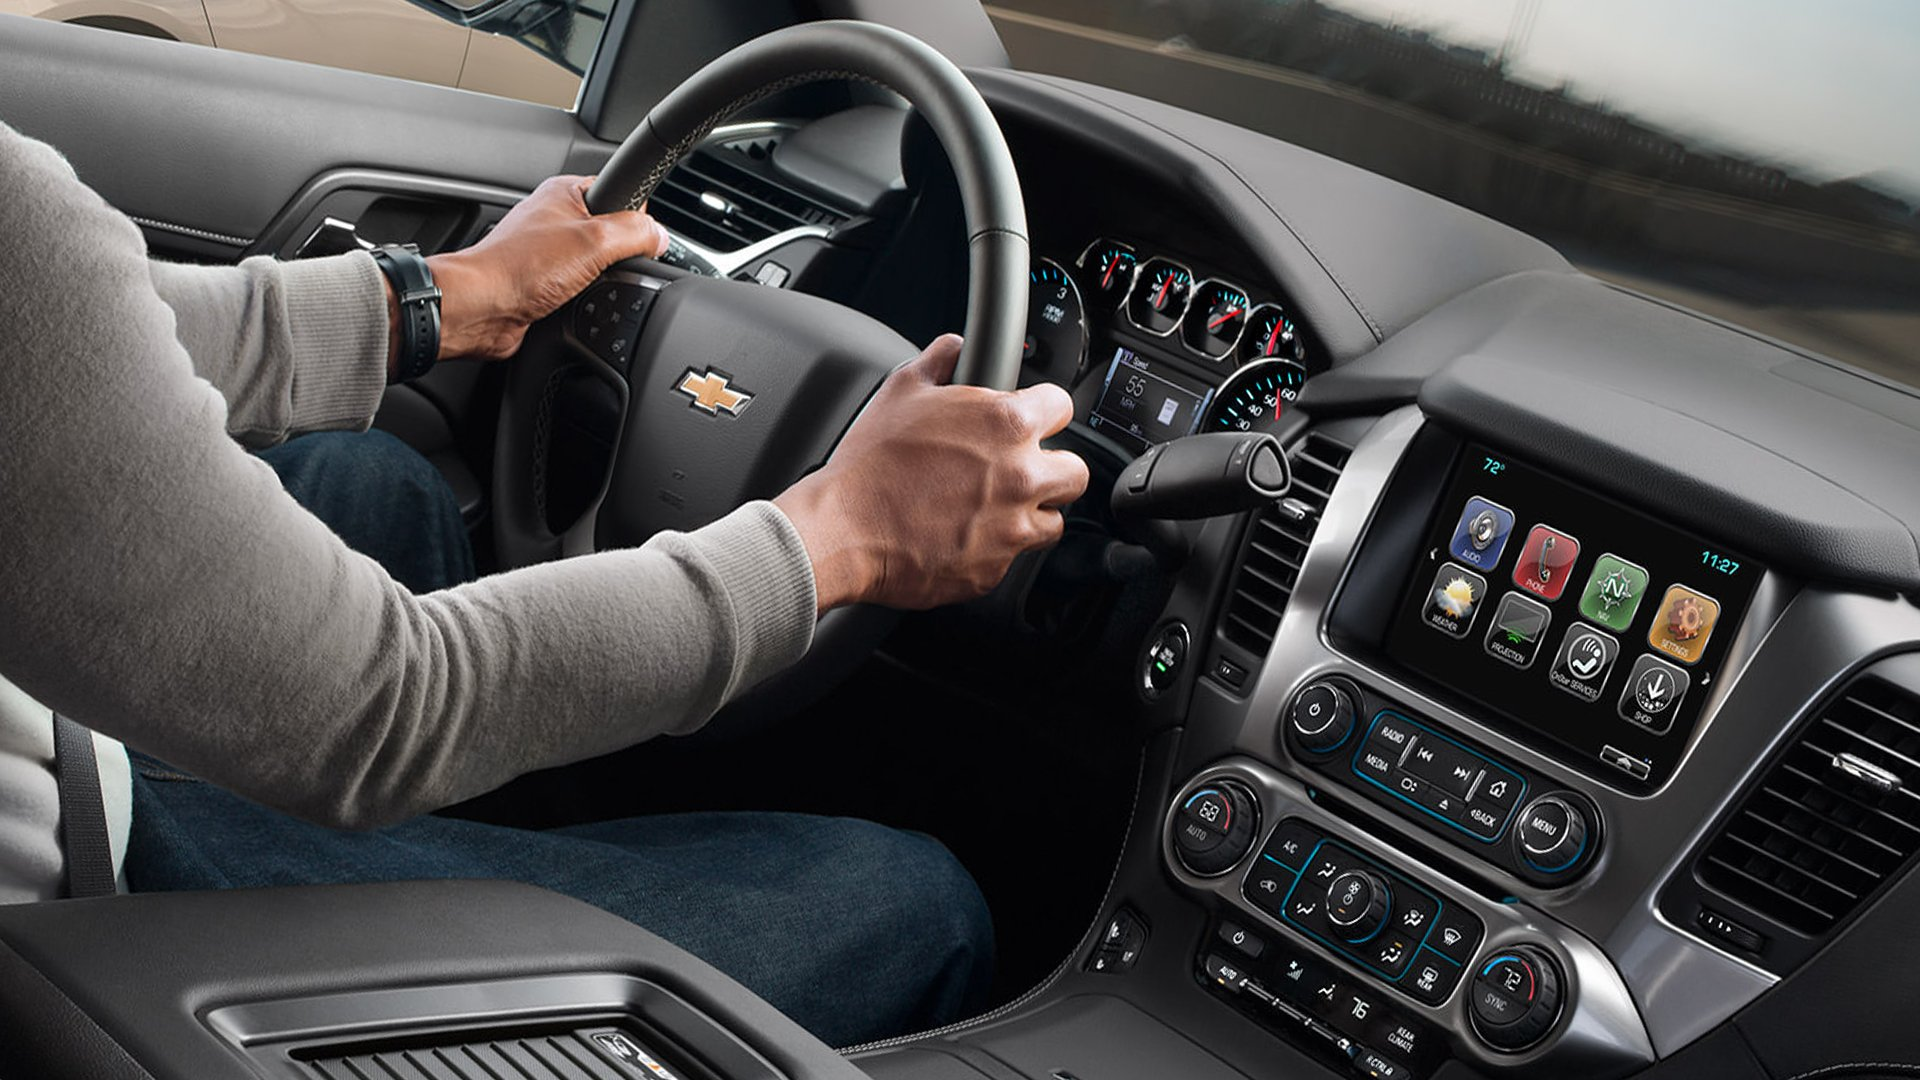 New 2019 Chevrolet Tahoe Interior Design